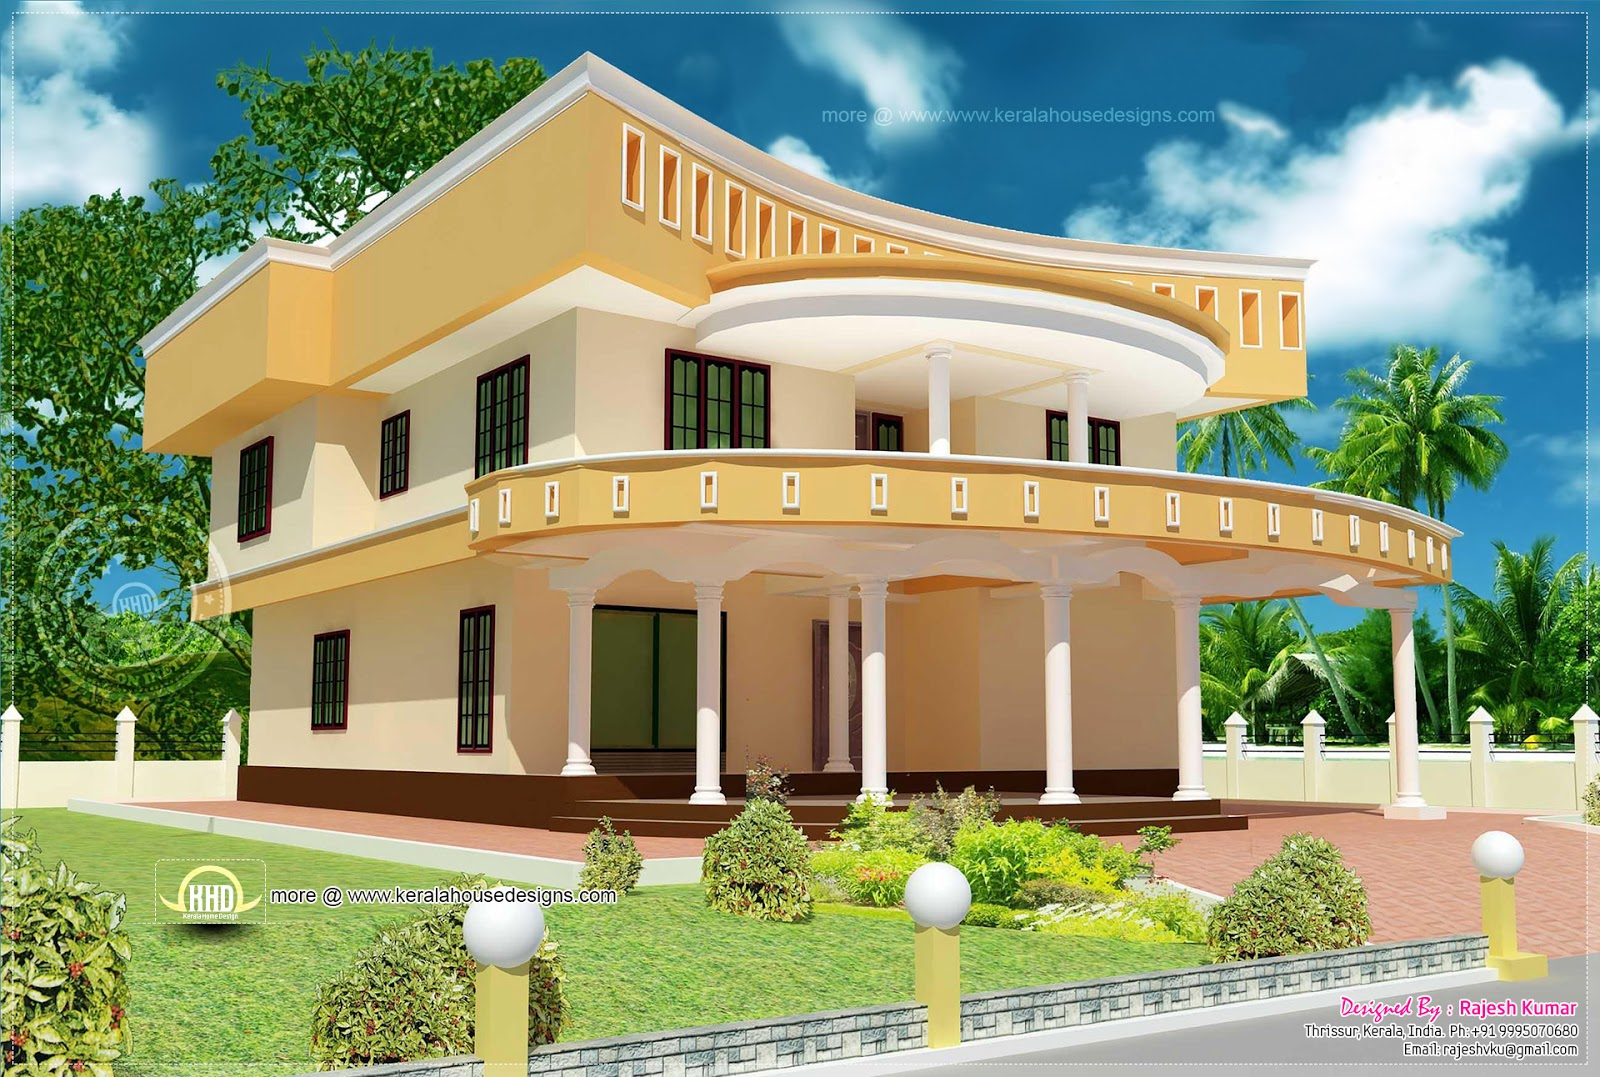 Unique home design in kerala kerala home design and for Cool house designs